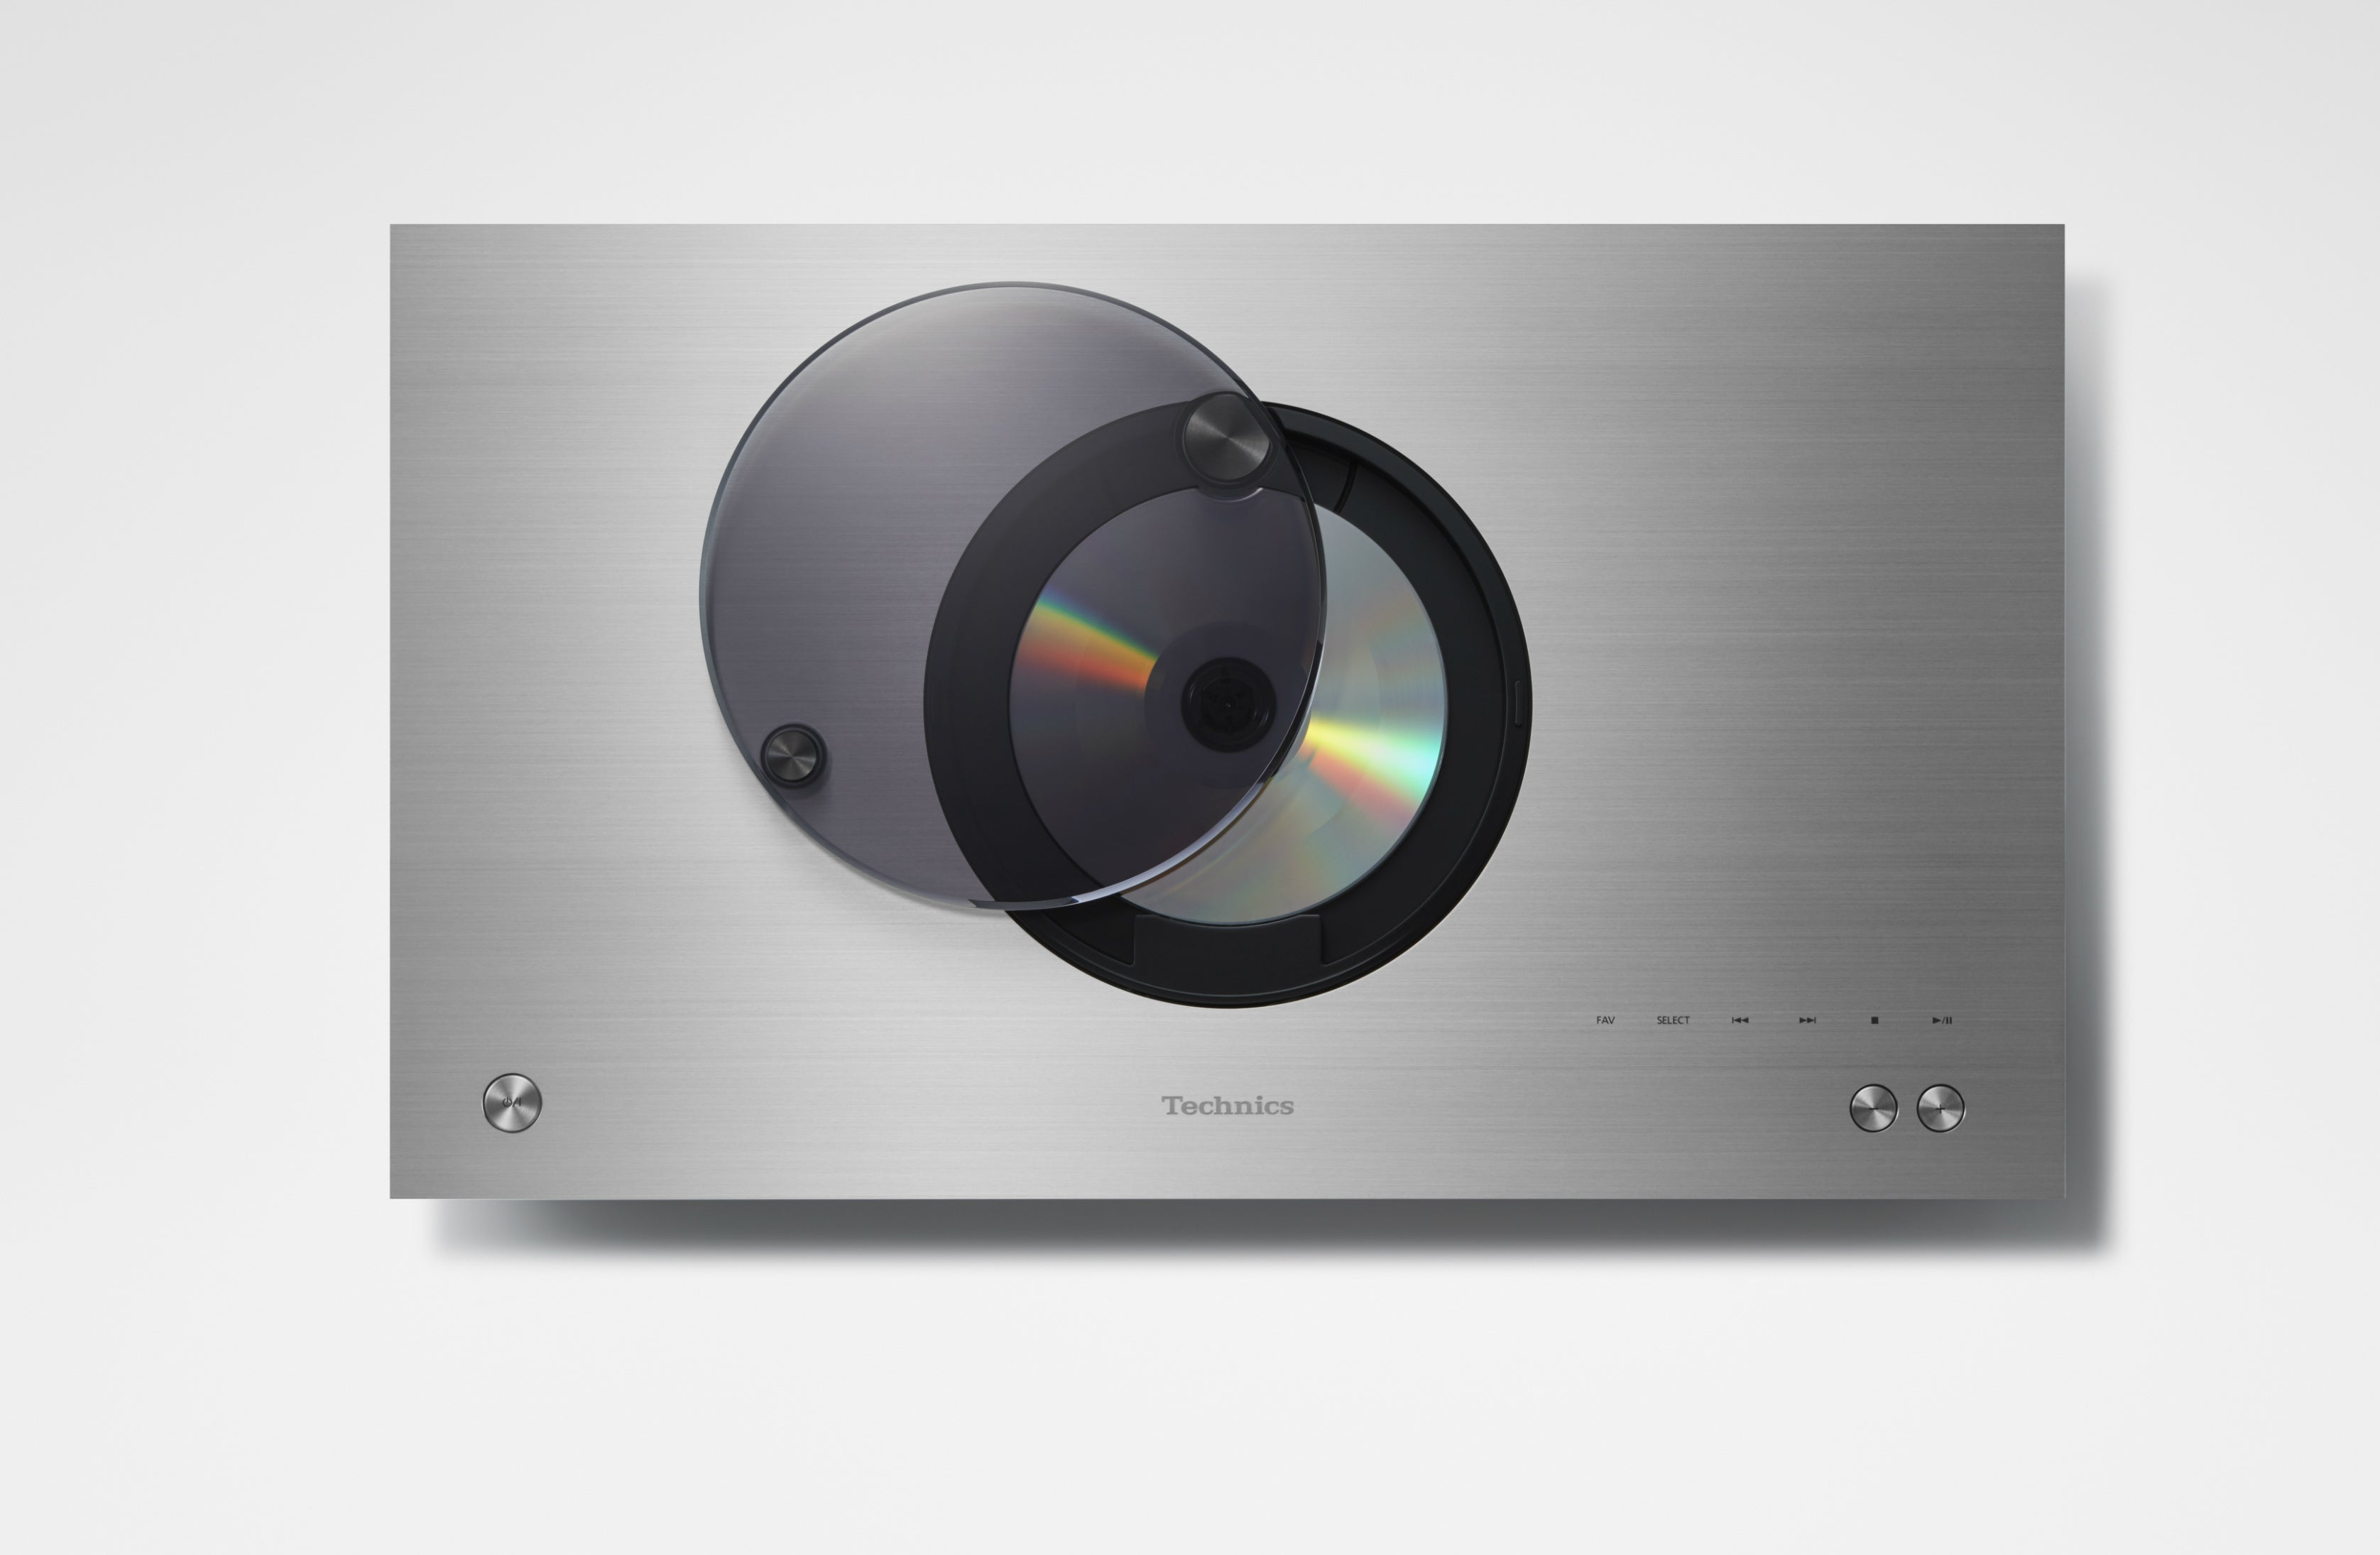 Technics Ottava f SC-C70 Review | Trusted Reviews